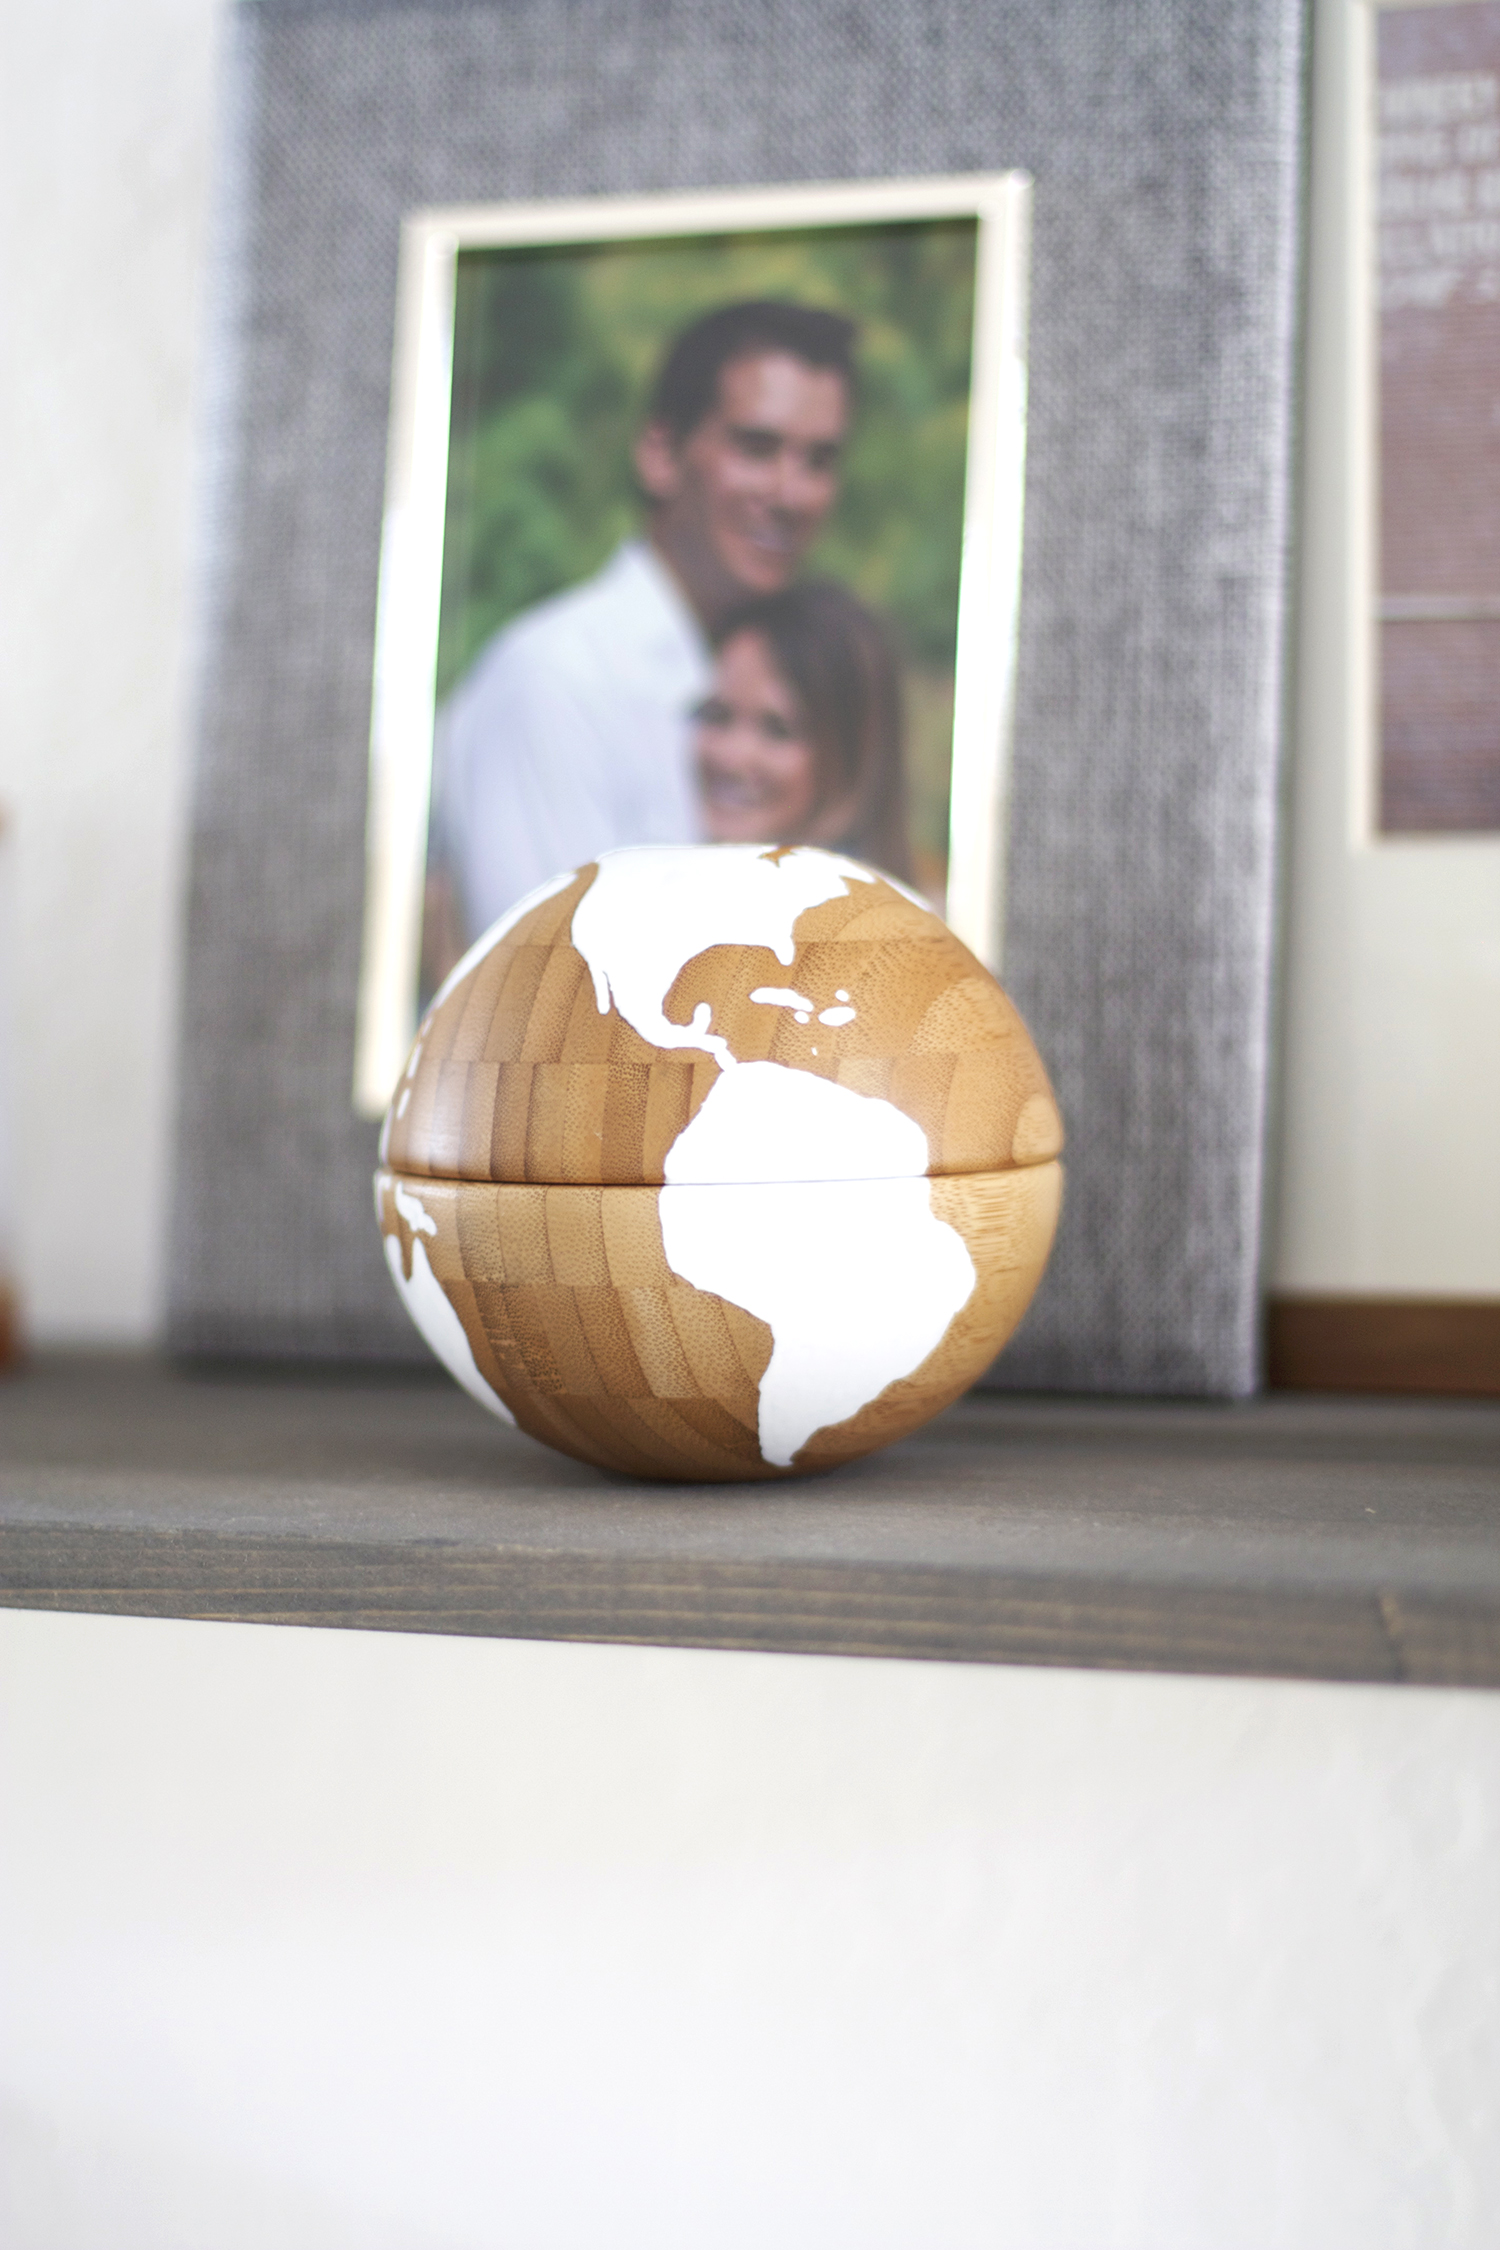 Make This DIY Globe Accessory With Two IKEA Bowls!